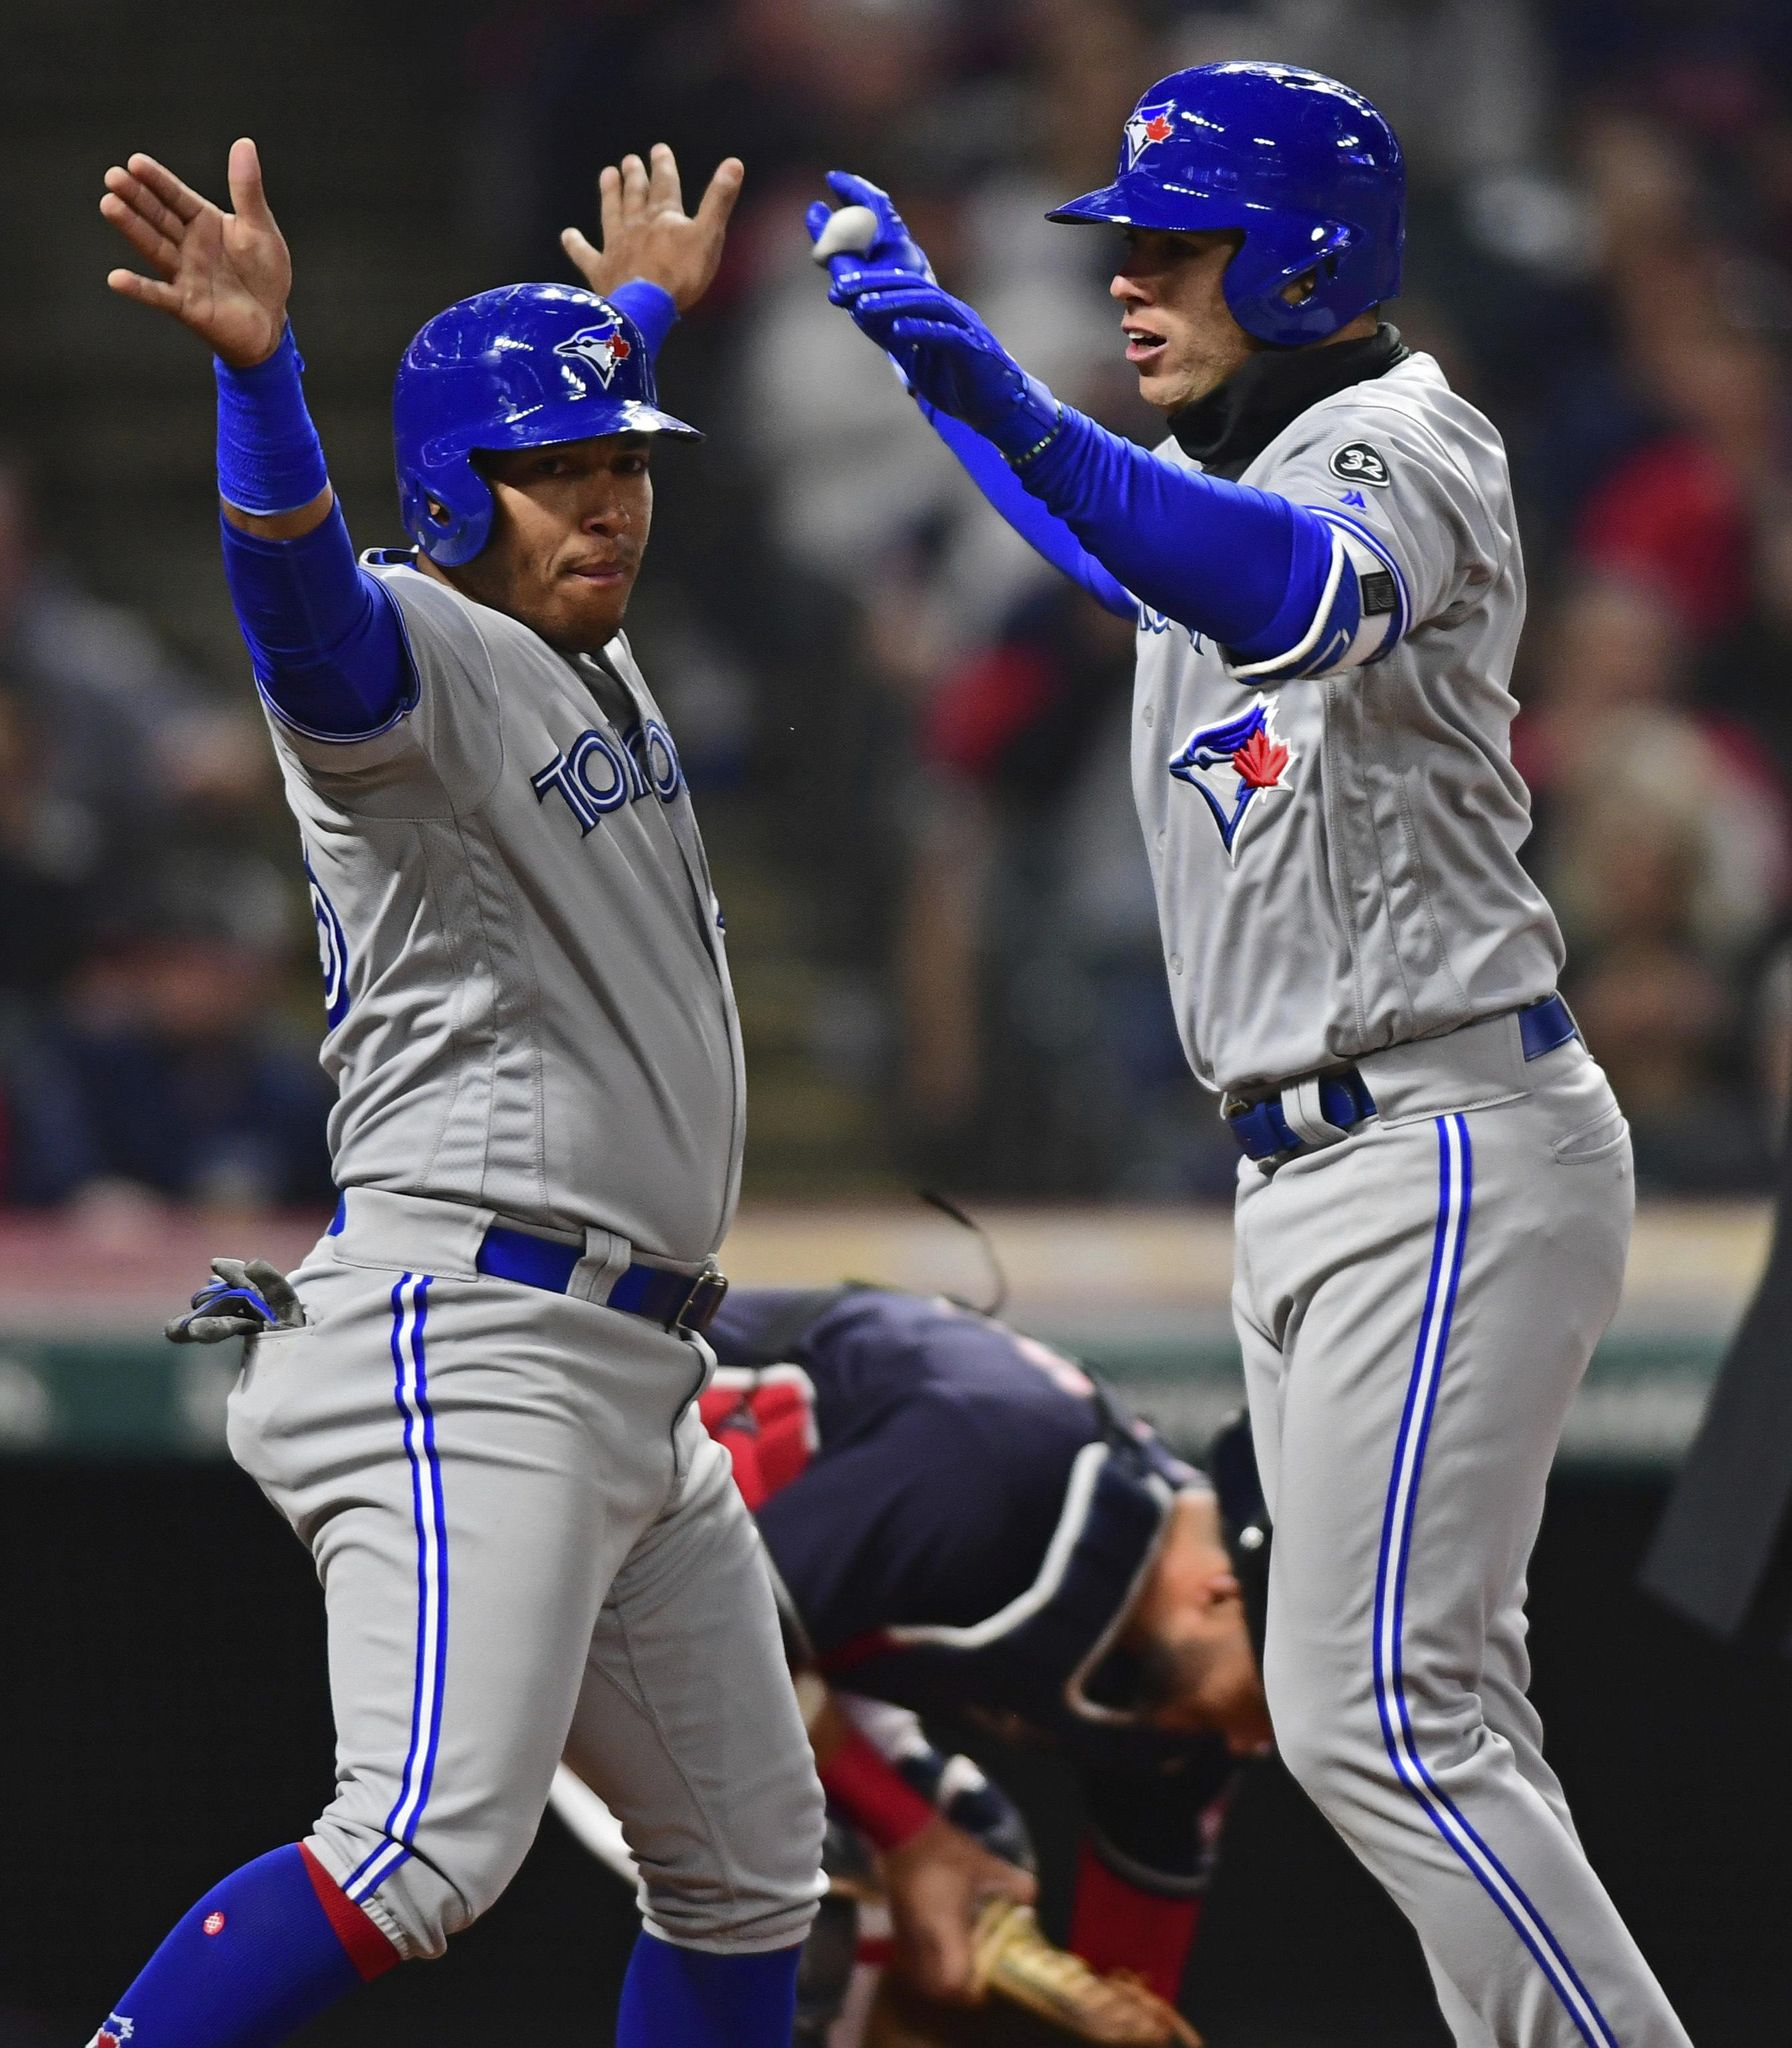 Blue_jays_indians_baseball_61445_s1792x2048